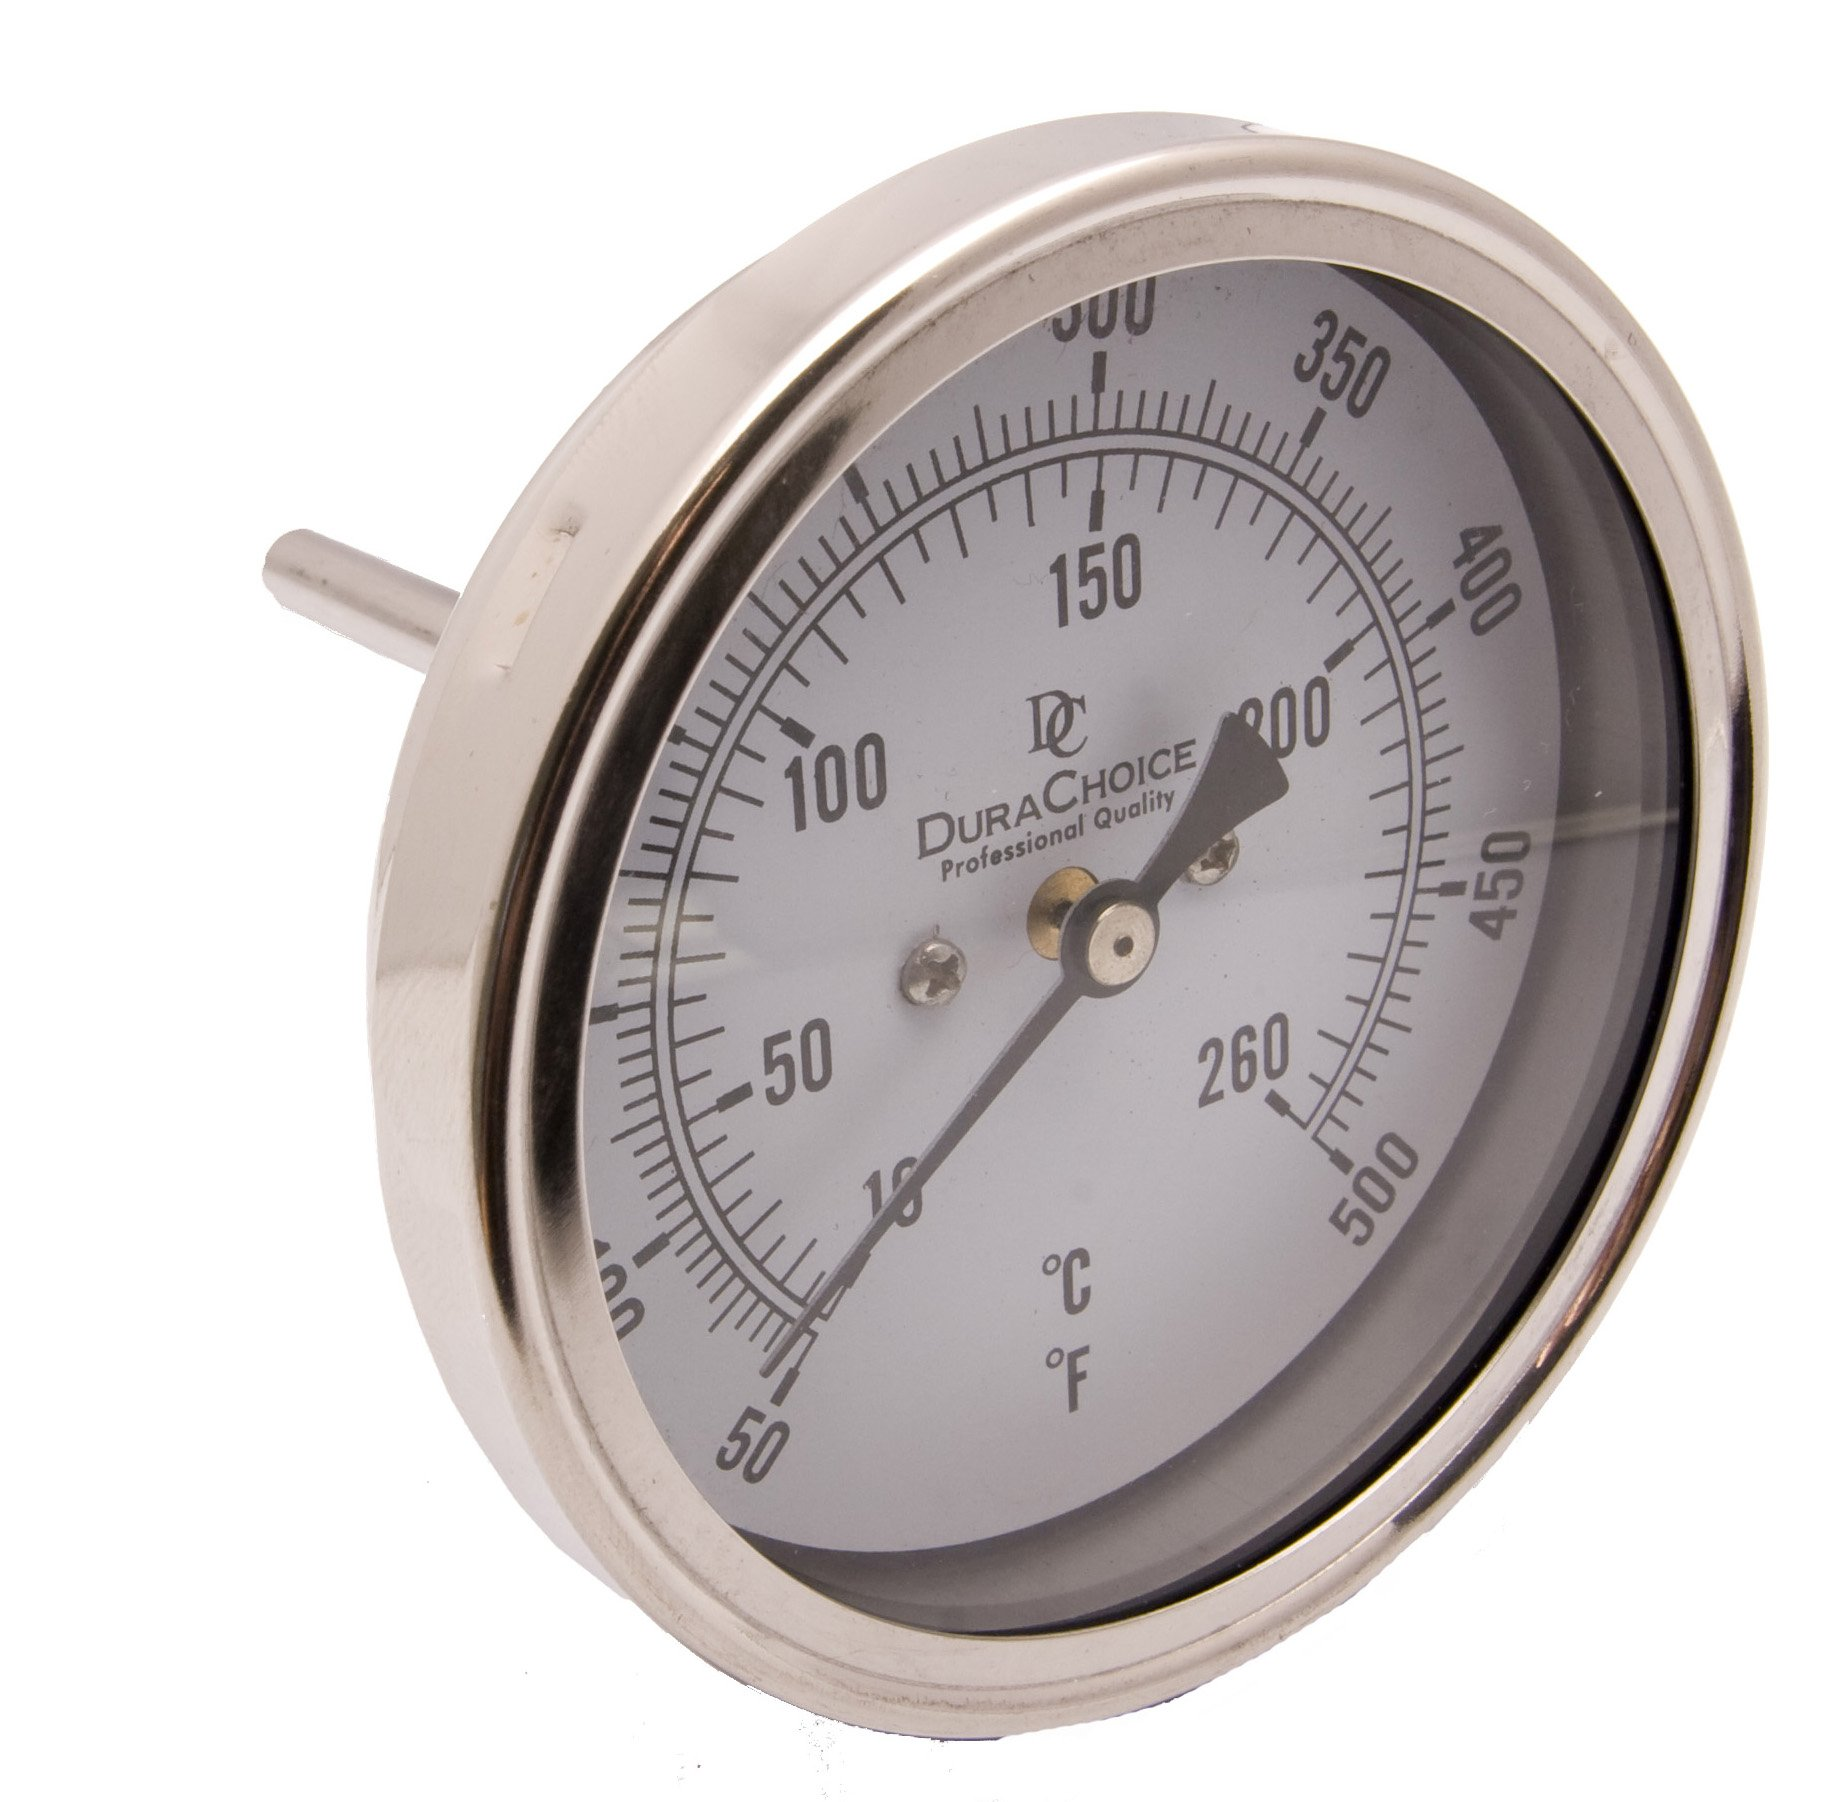 Industrial Bimetal Thermometer 5'' Face x 4'' Stem, 50-500 w/Calibration Dial